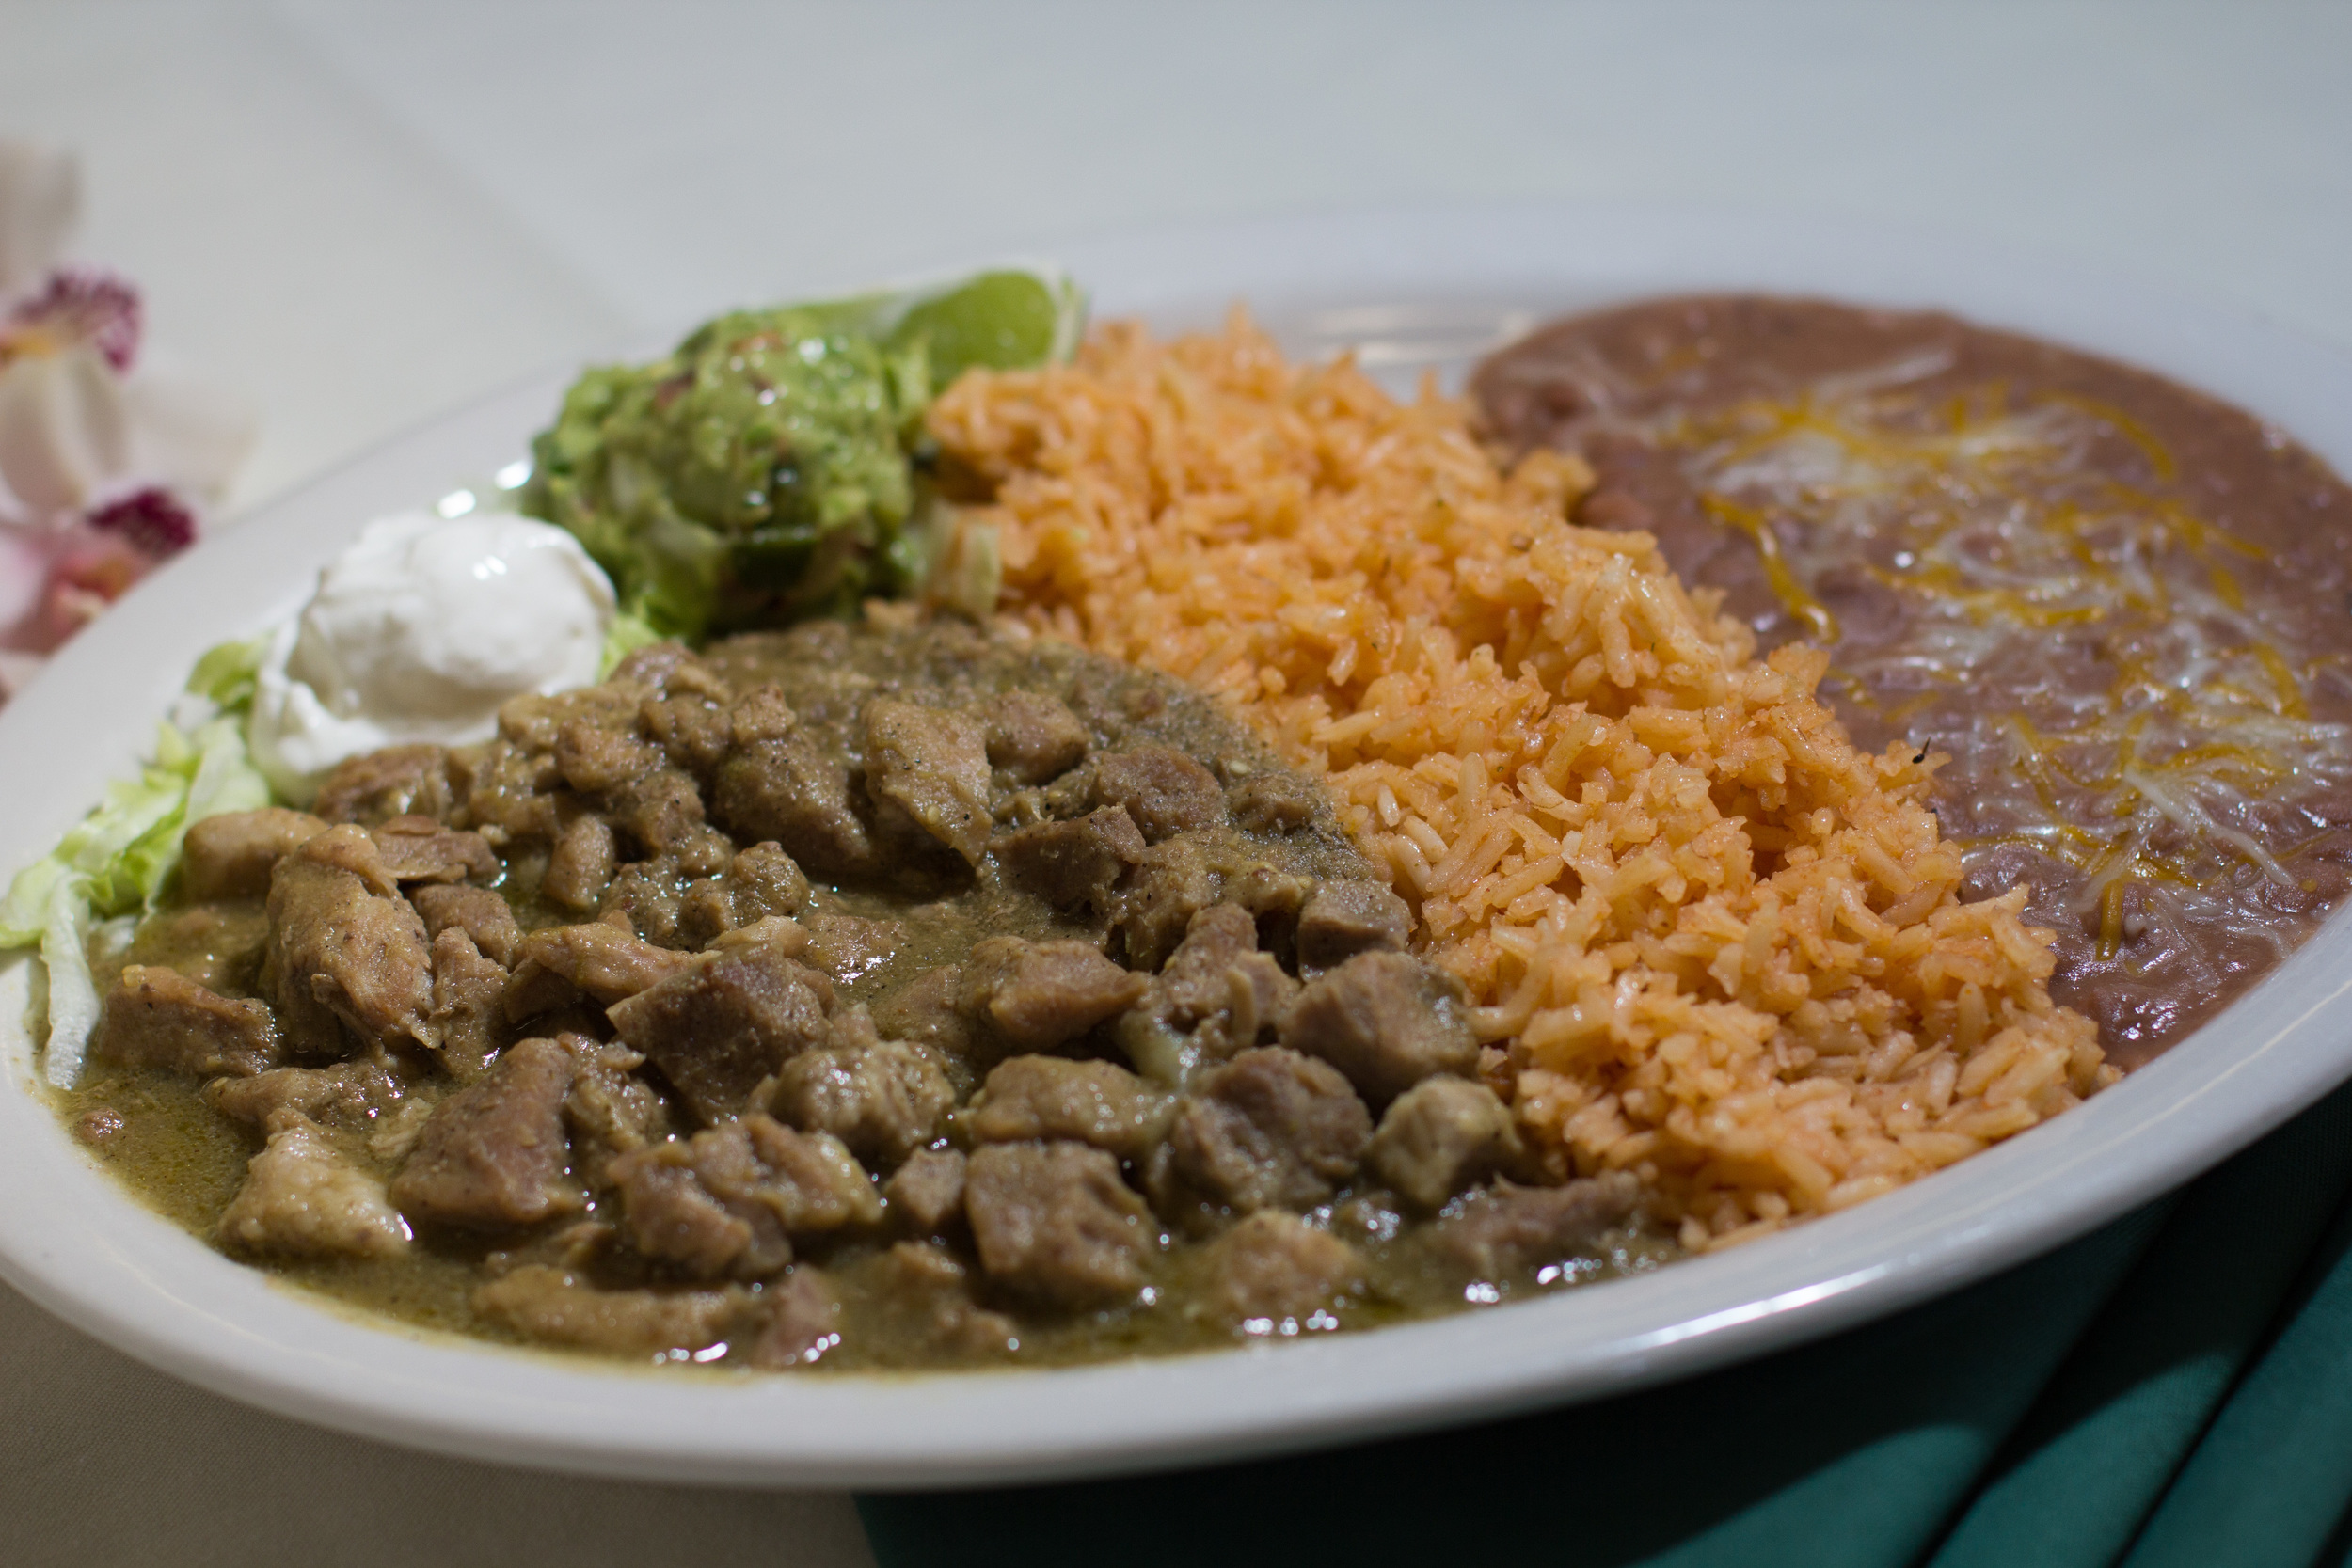 Chile Verde - Pork marinated in our special tomatillo sauce